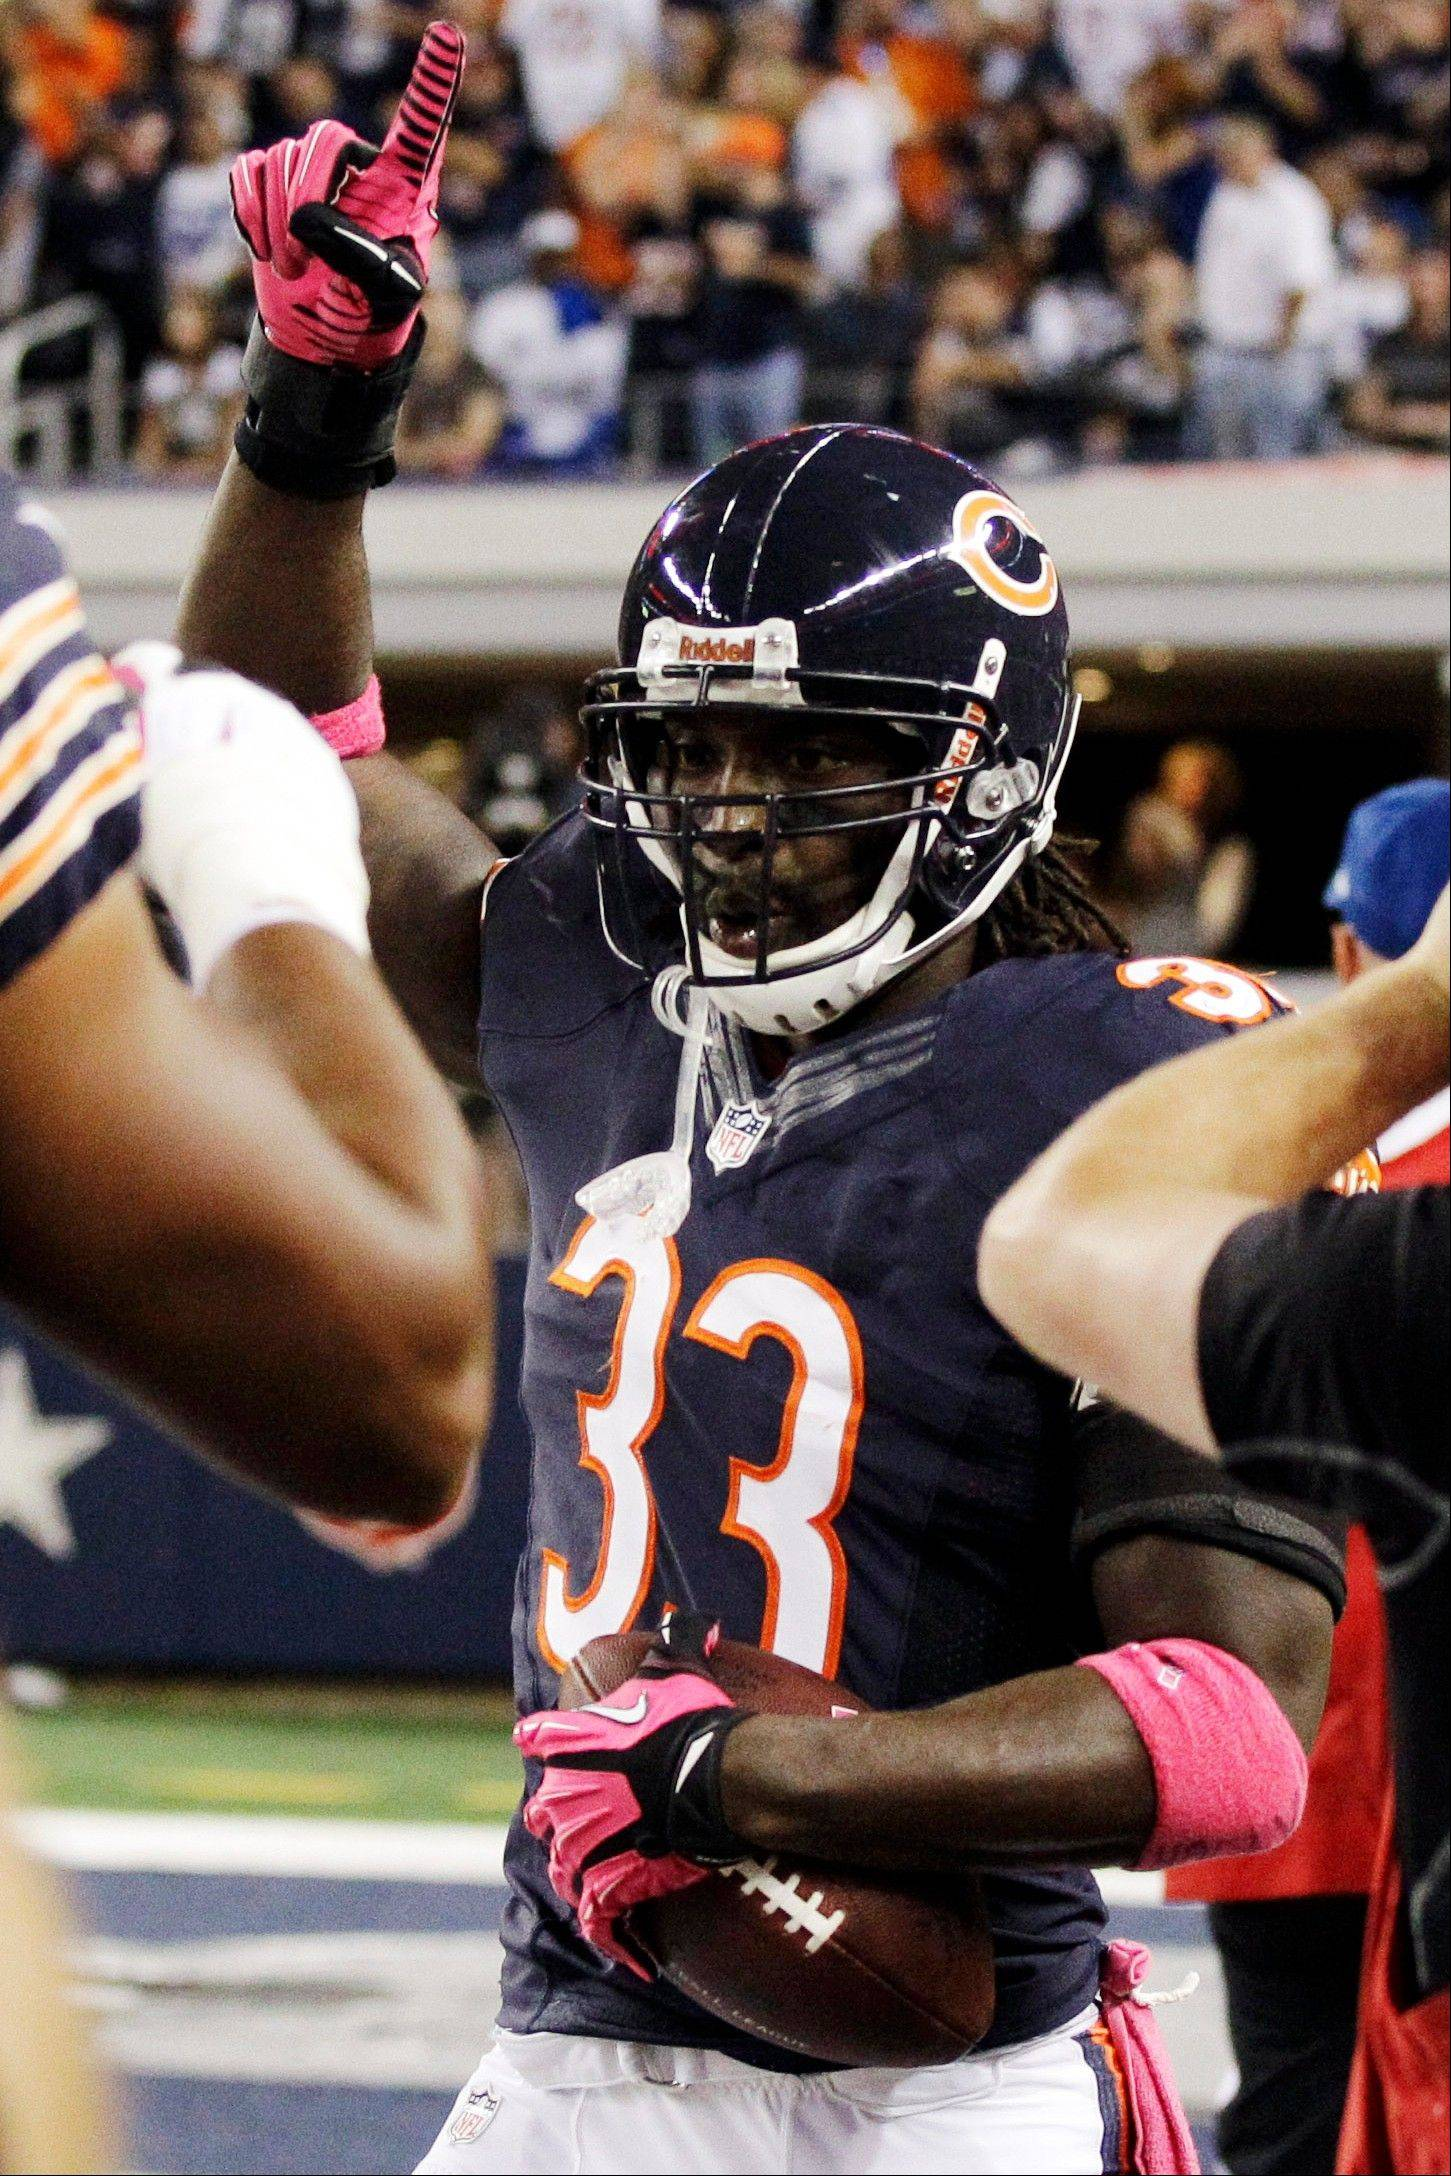 The Scorecard has cornerback Charles Tillman as the Bears� MVP for the first half of the season.